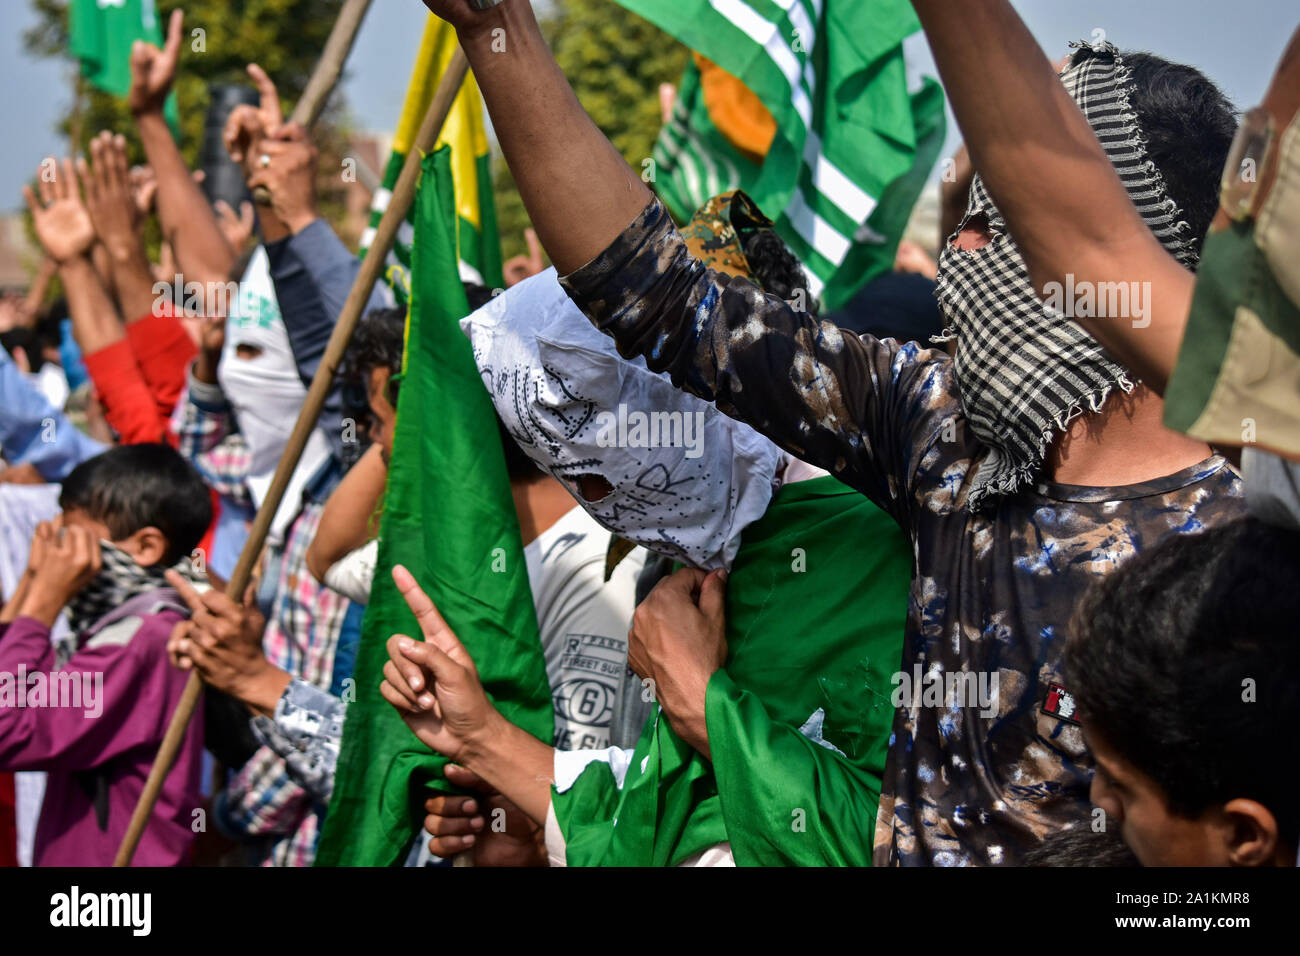 Protesters make gestures during the demonstration.A rally was held in Srinagar city soon after the Friday prayers following the scrapping of Article 370 by the central government which grants special status to Jammu & Kashmir. Stock Photo